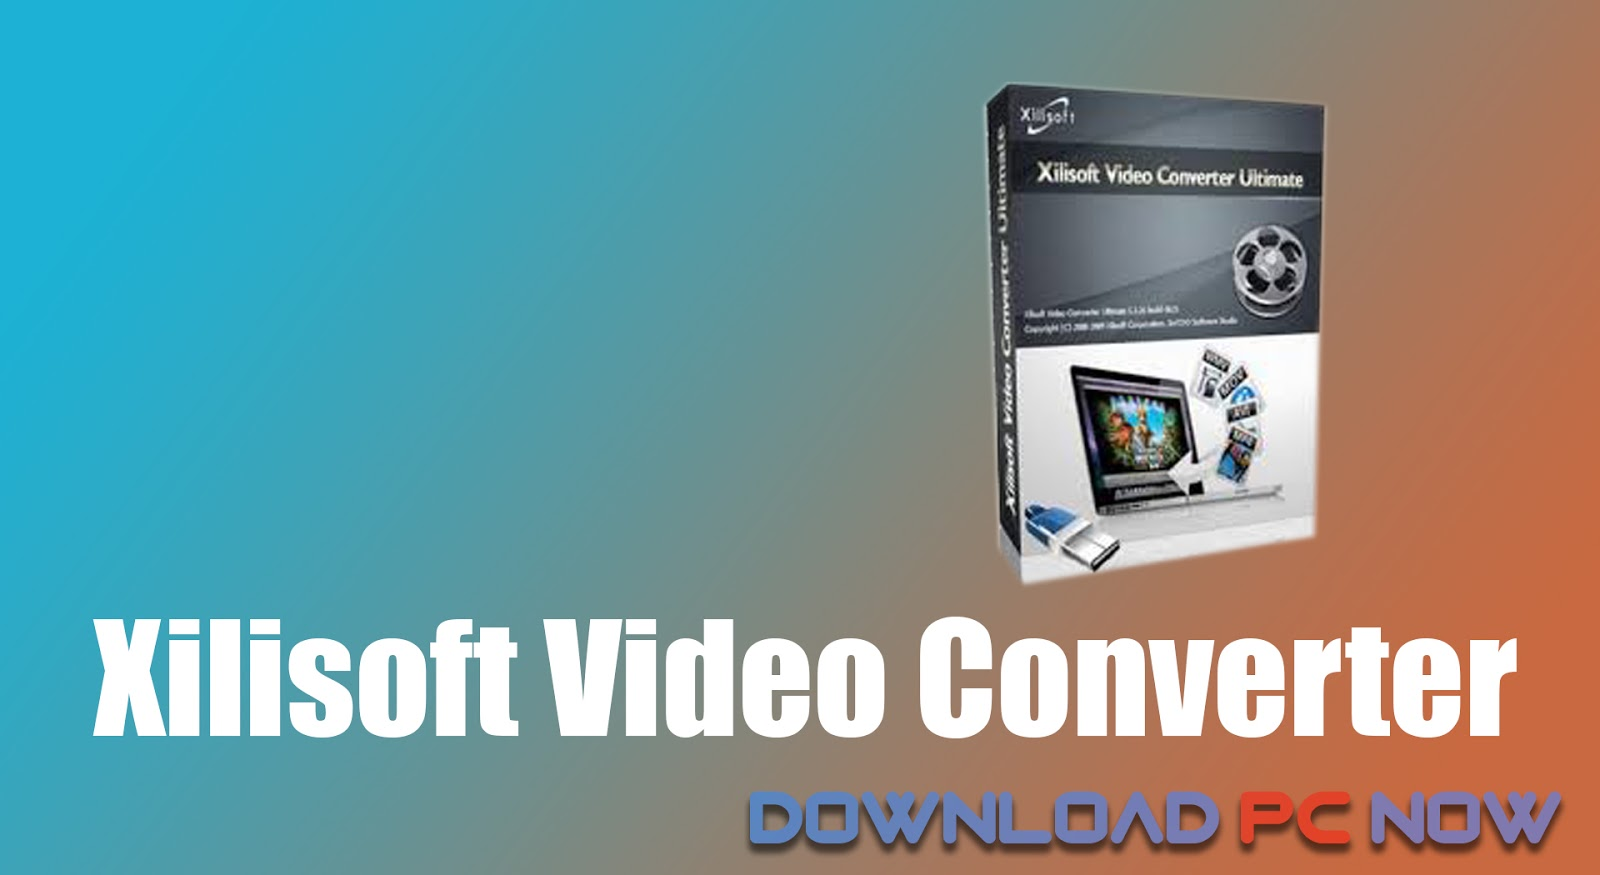 Xilisoft Video Converter Ultimate 7 8 23 Build 20180925 Portable